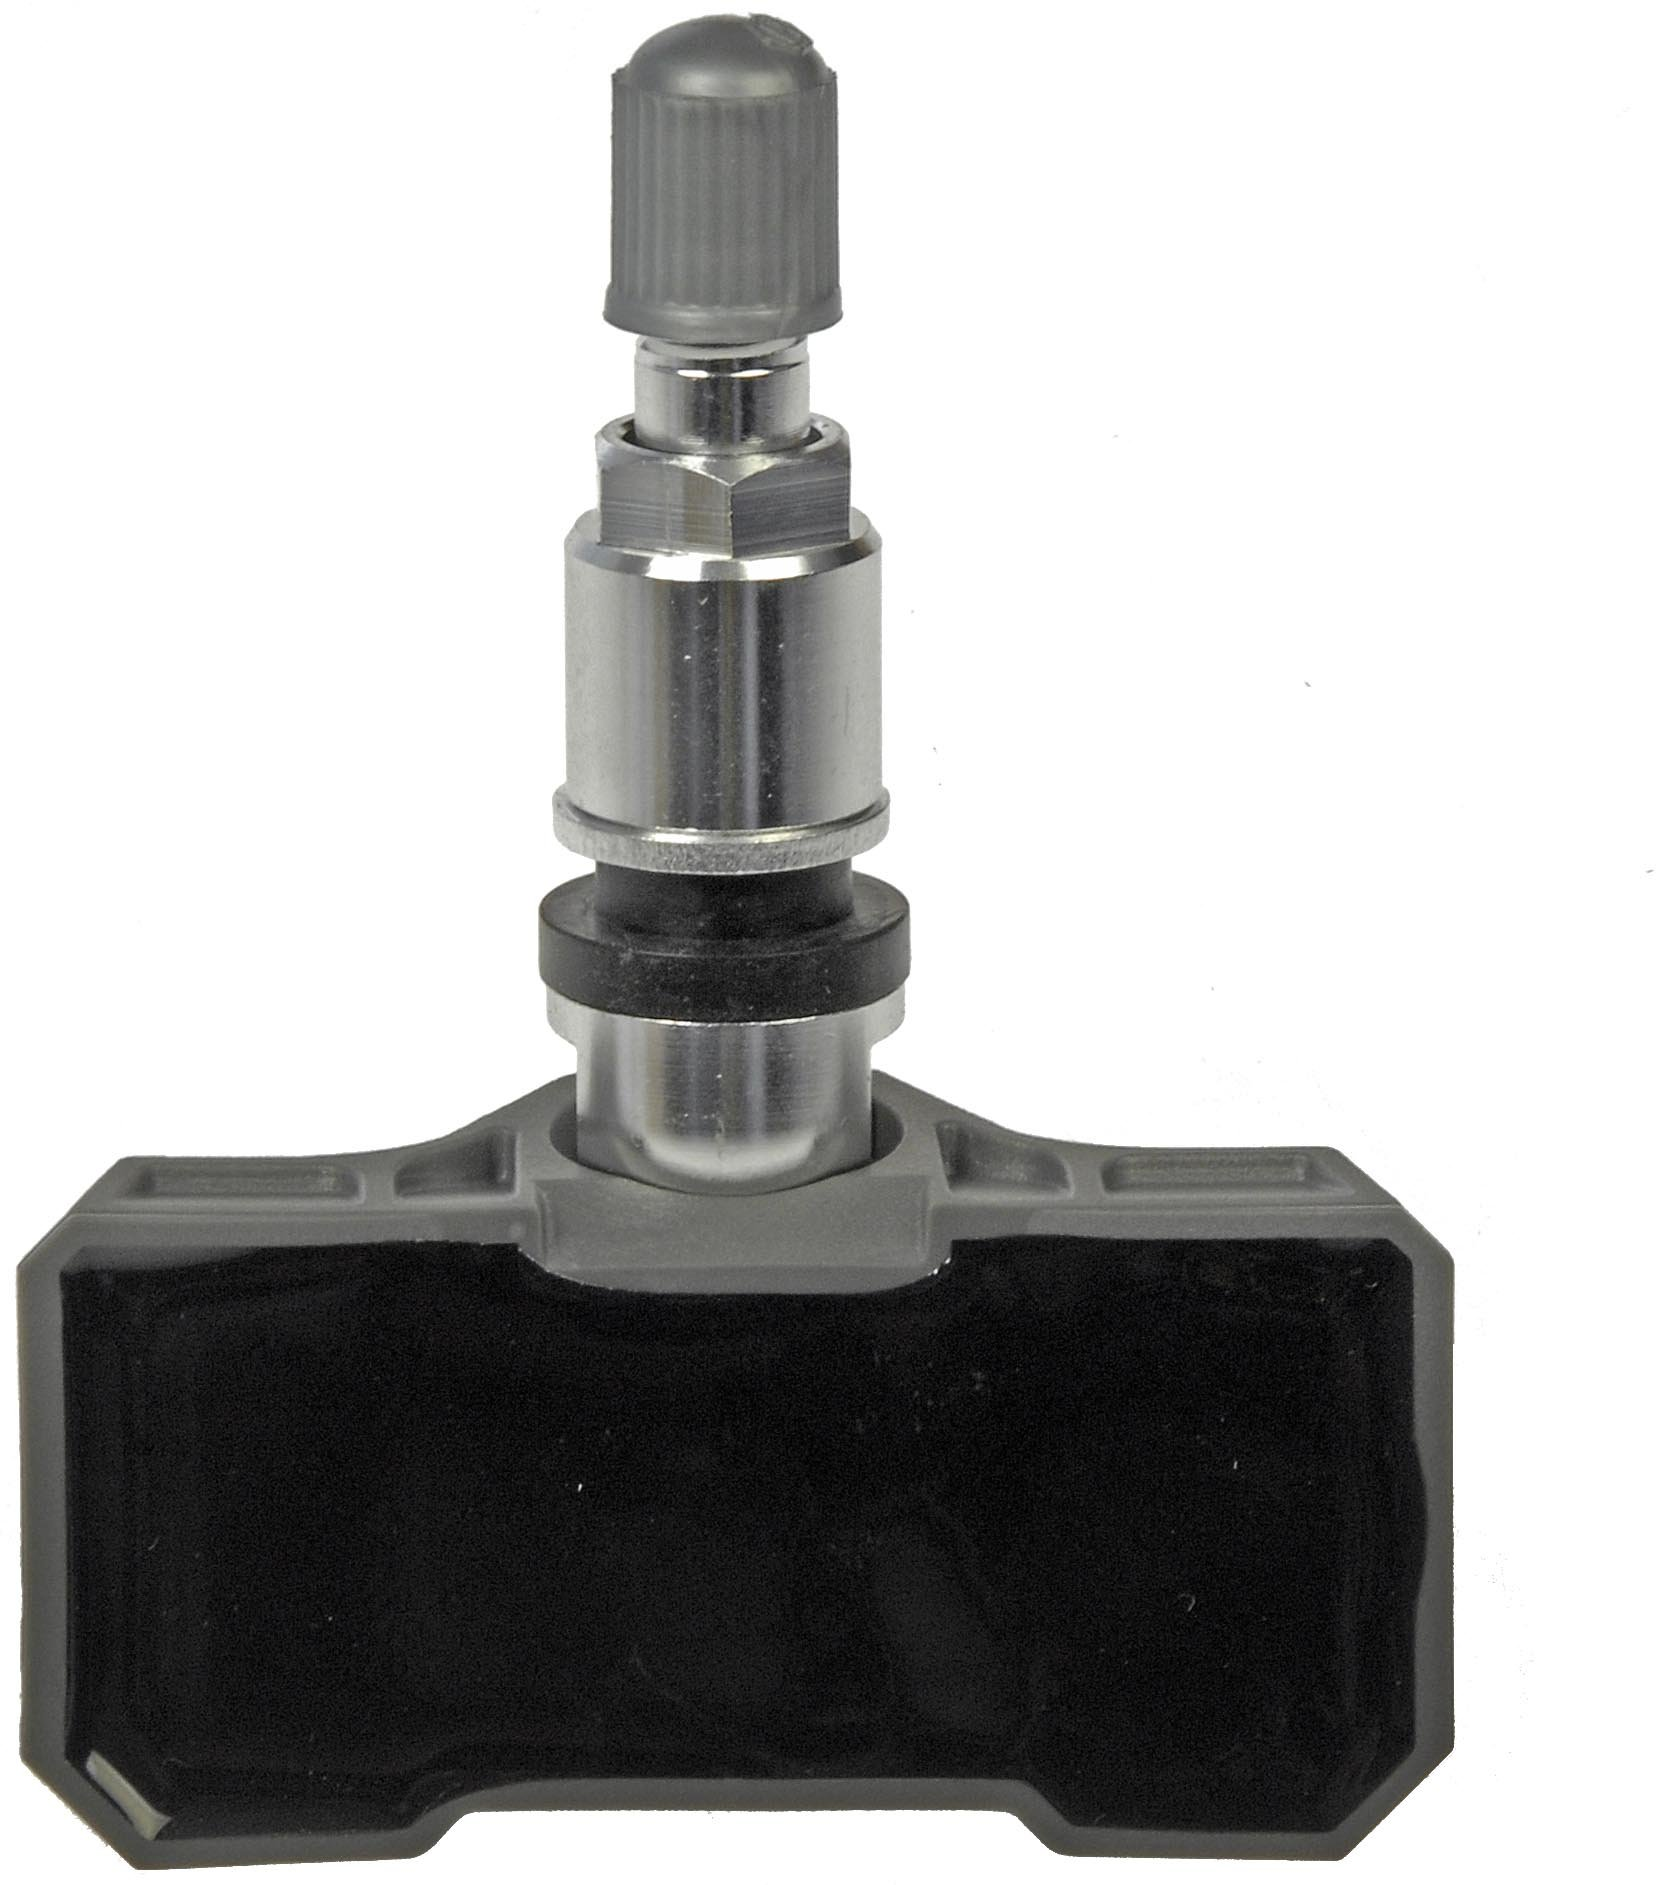 Dorman 974-061 Chrysler/Dodge Tire Pressure Monitor System Sensor and Transmitter (Single Unit) by Dorman (Image #2)